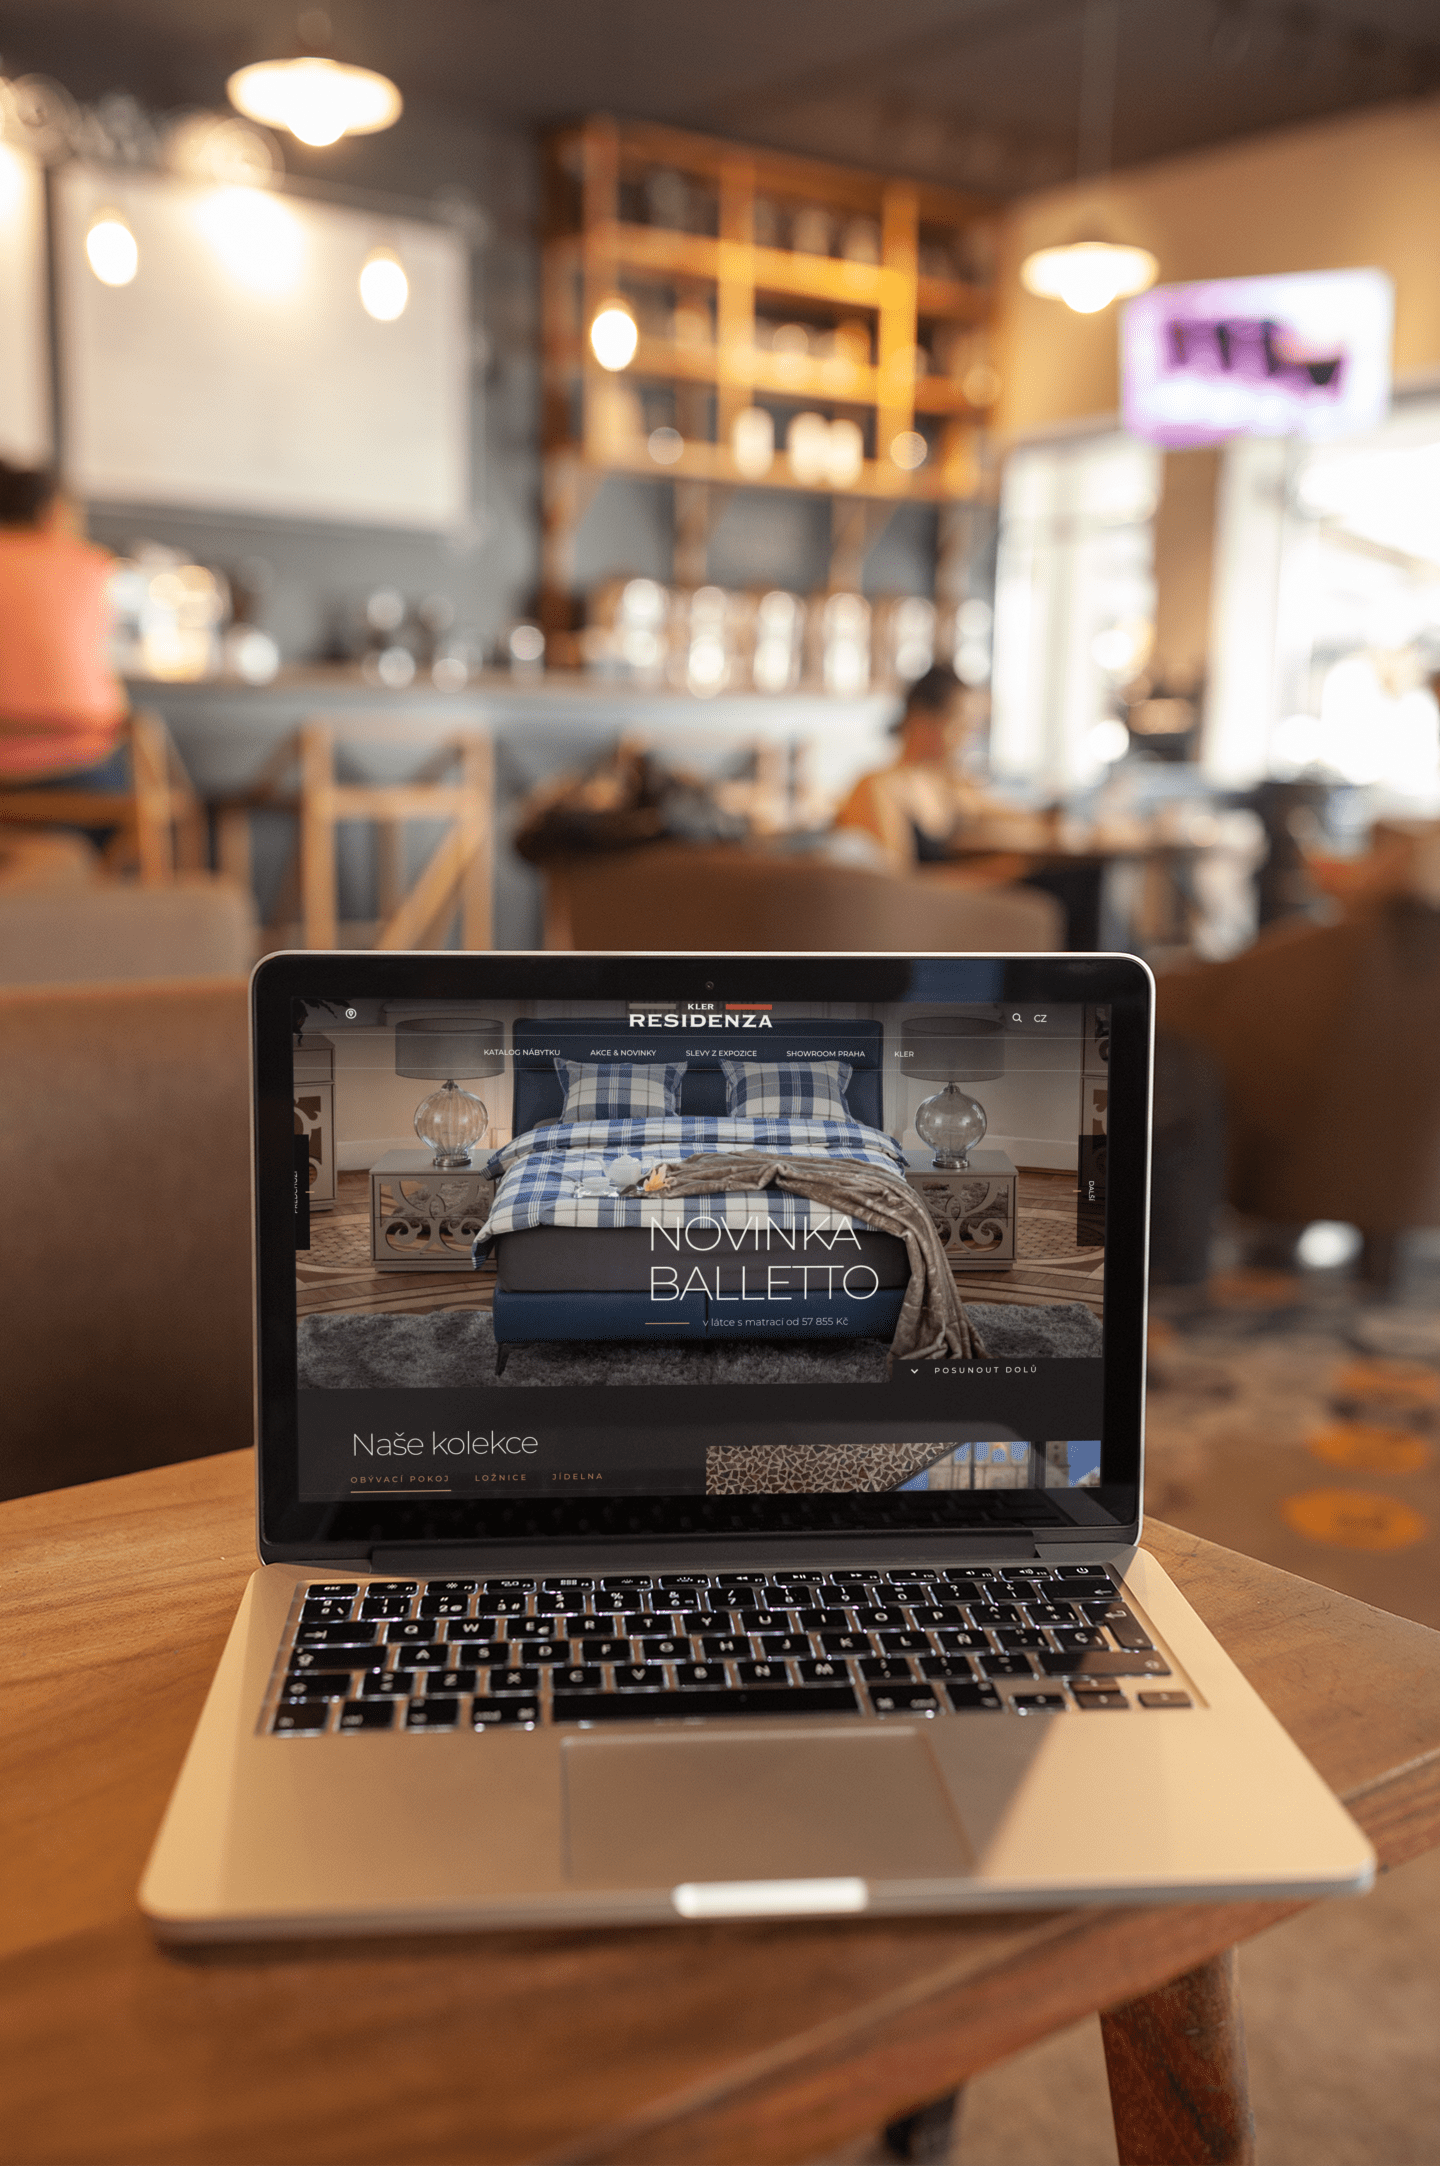 macbook-mockup-standing-on-the-corner-of-a-wooden-table-a20998 (7)